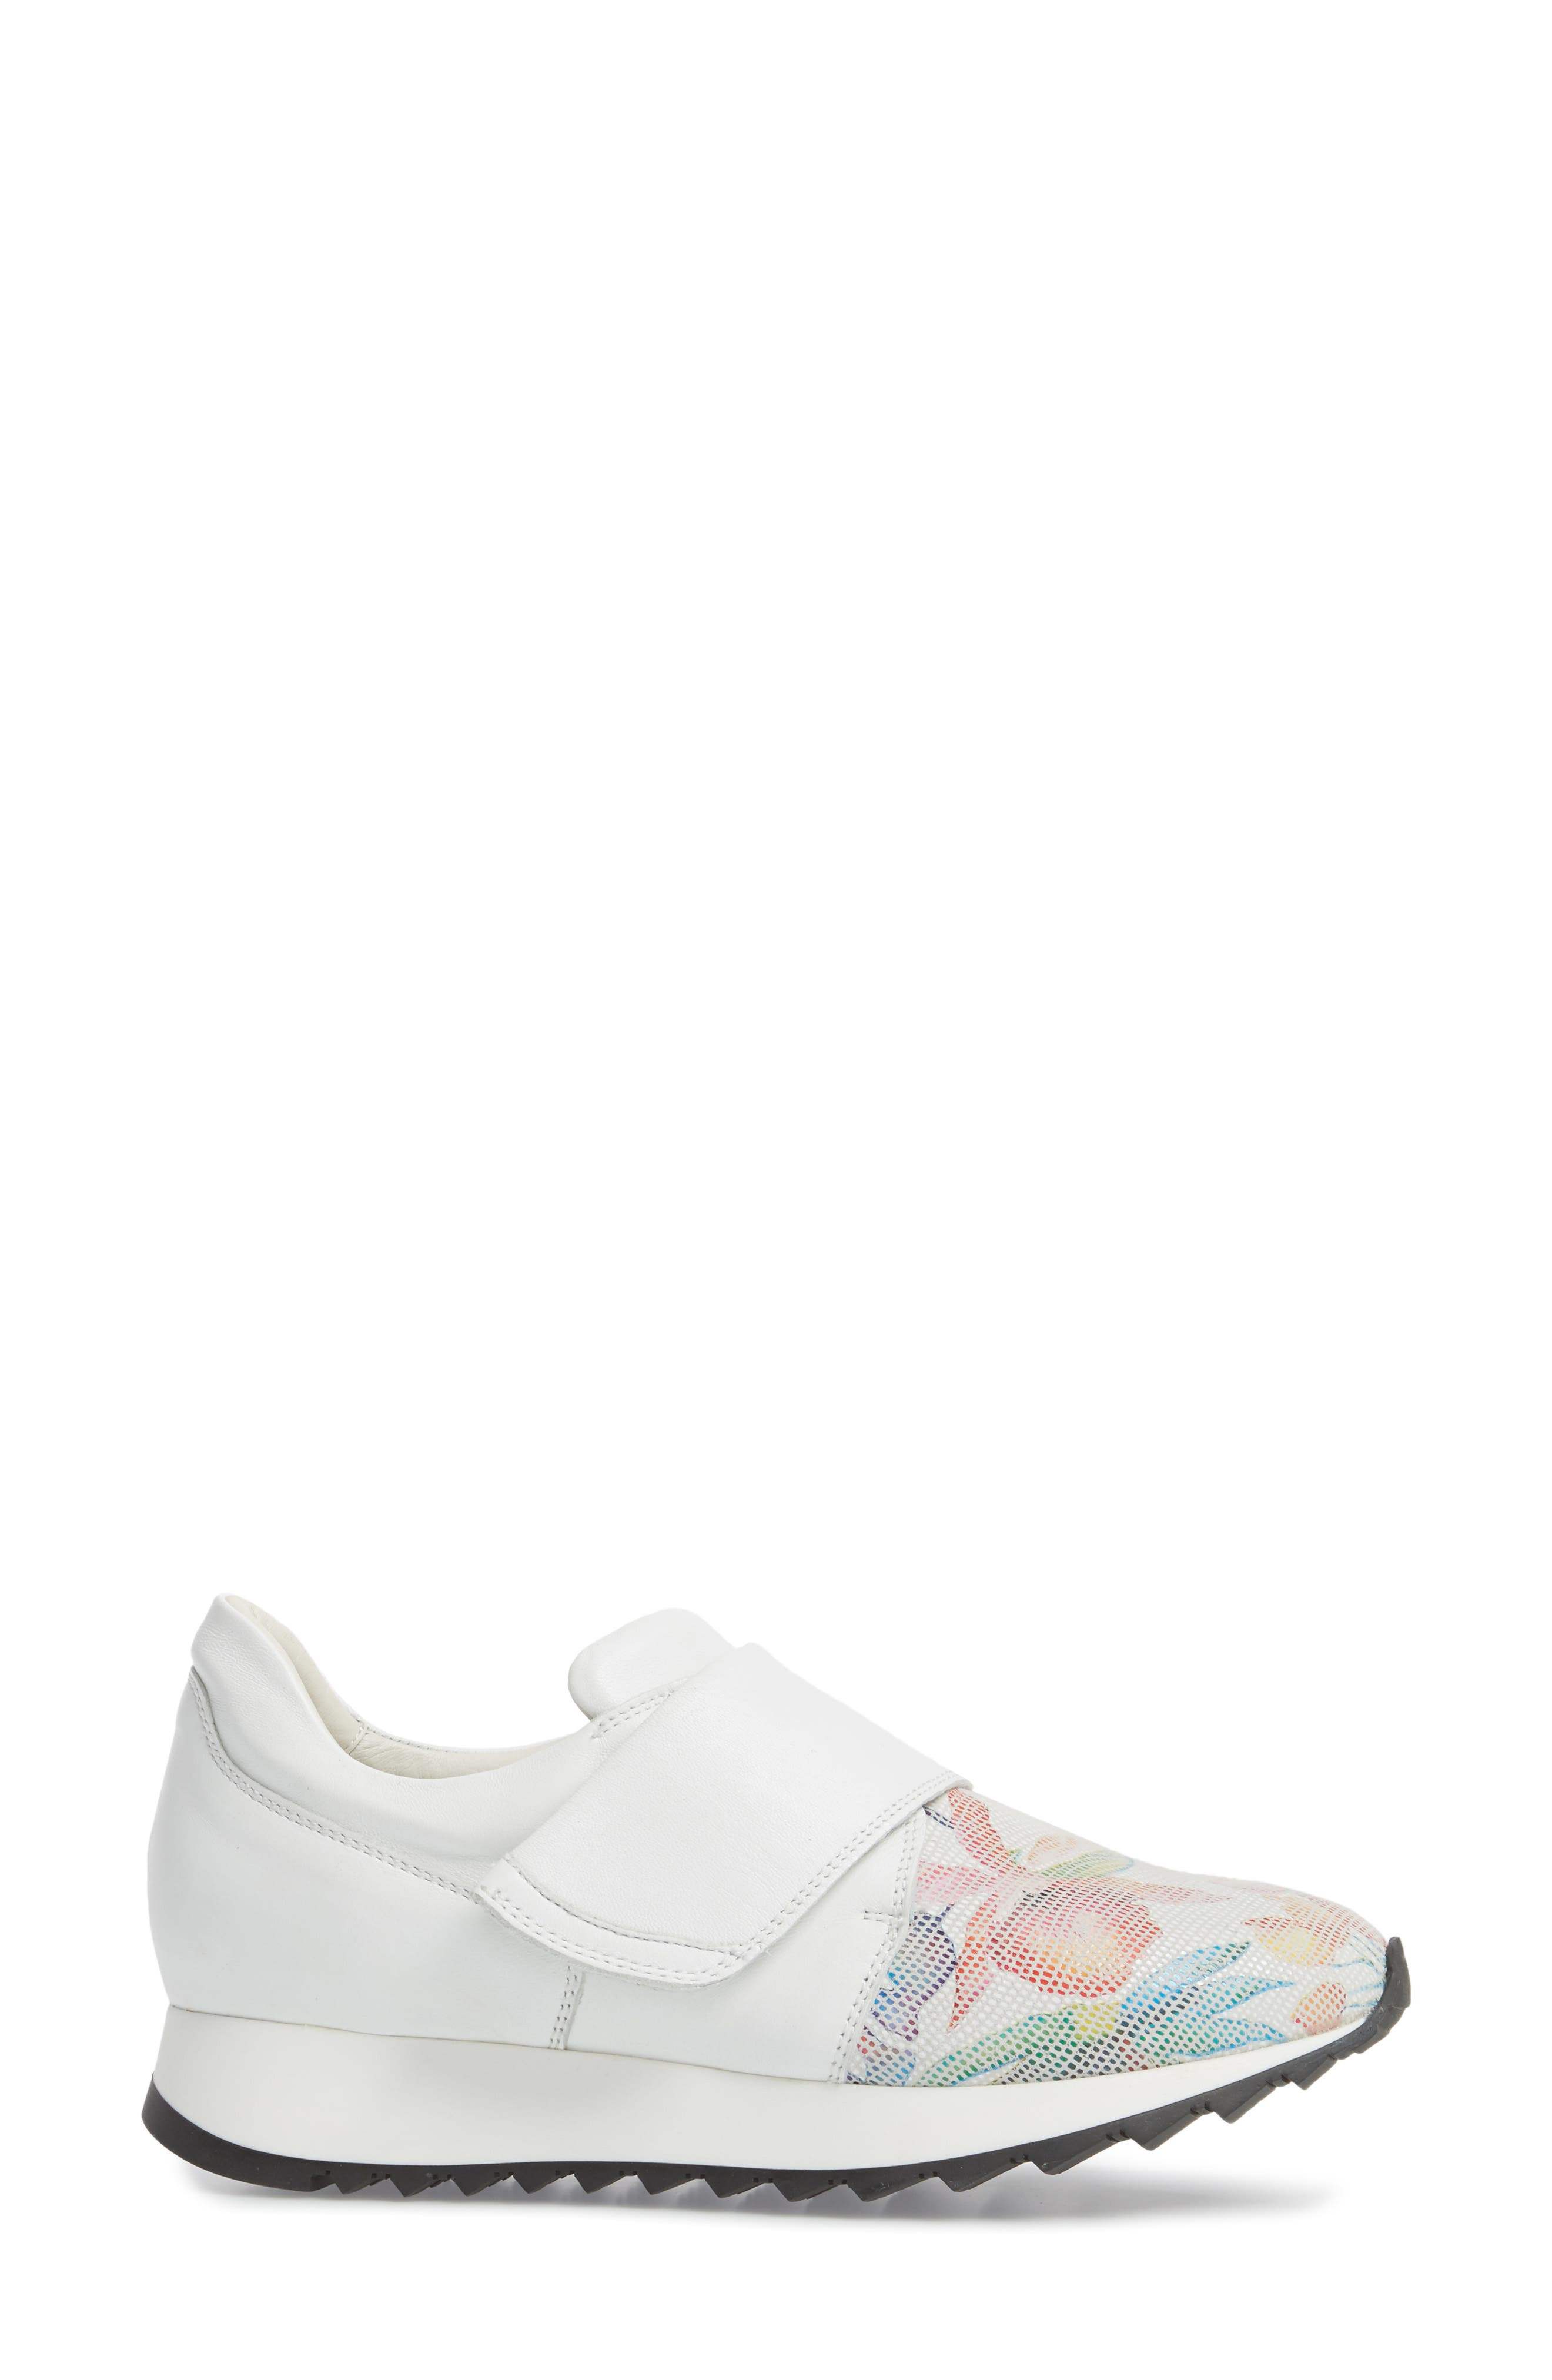 Danza Wedge Sneaker,                             Alternate thumbnail 3, color,                             WHITE LEATHER